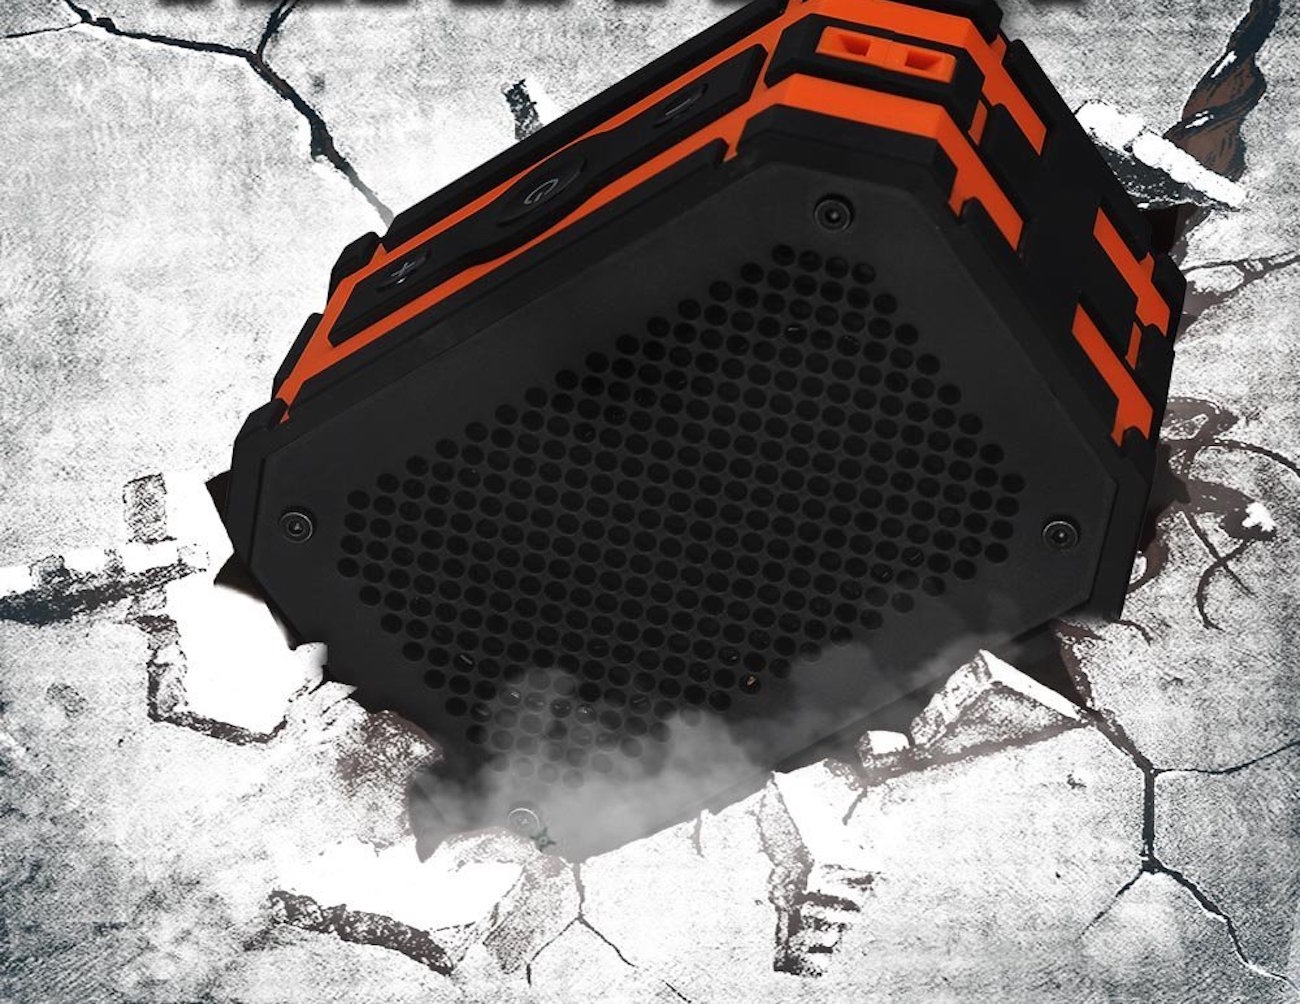 Mpow Armor – Portable Bluetooth Speaker and Power Bank